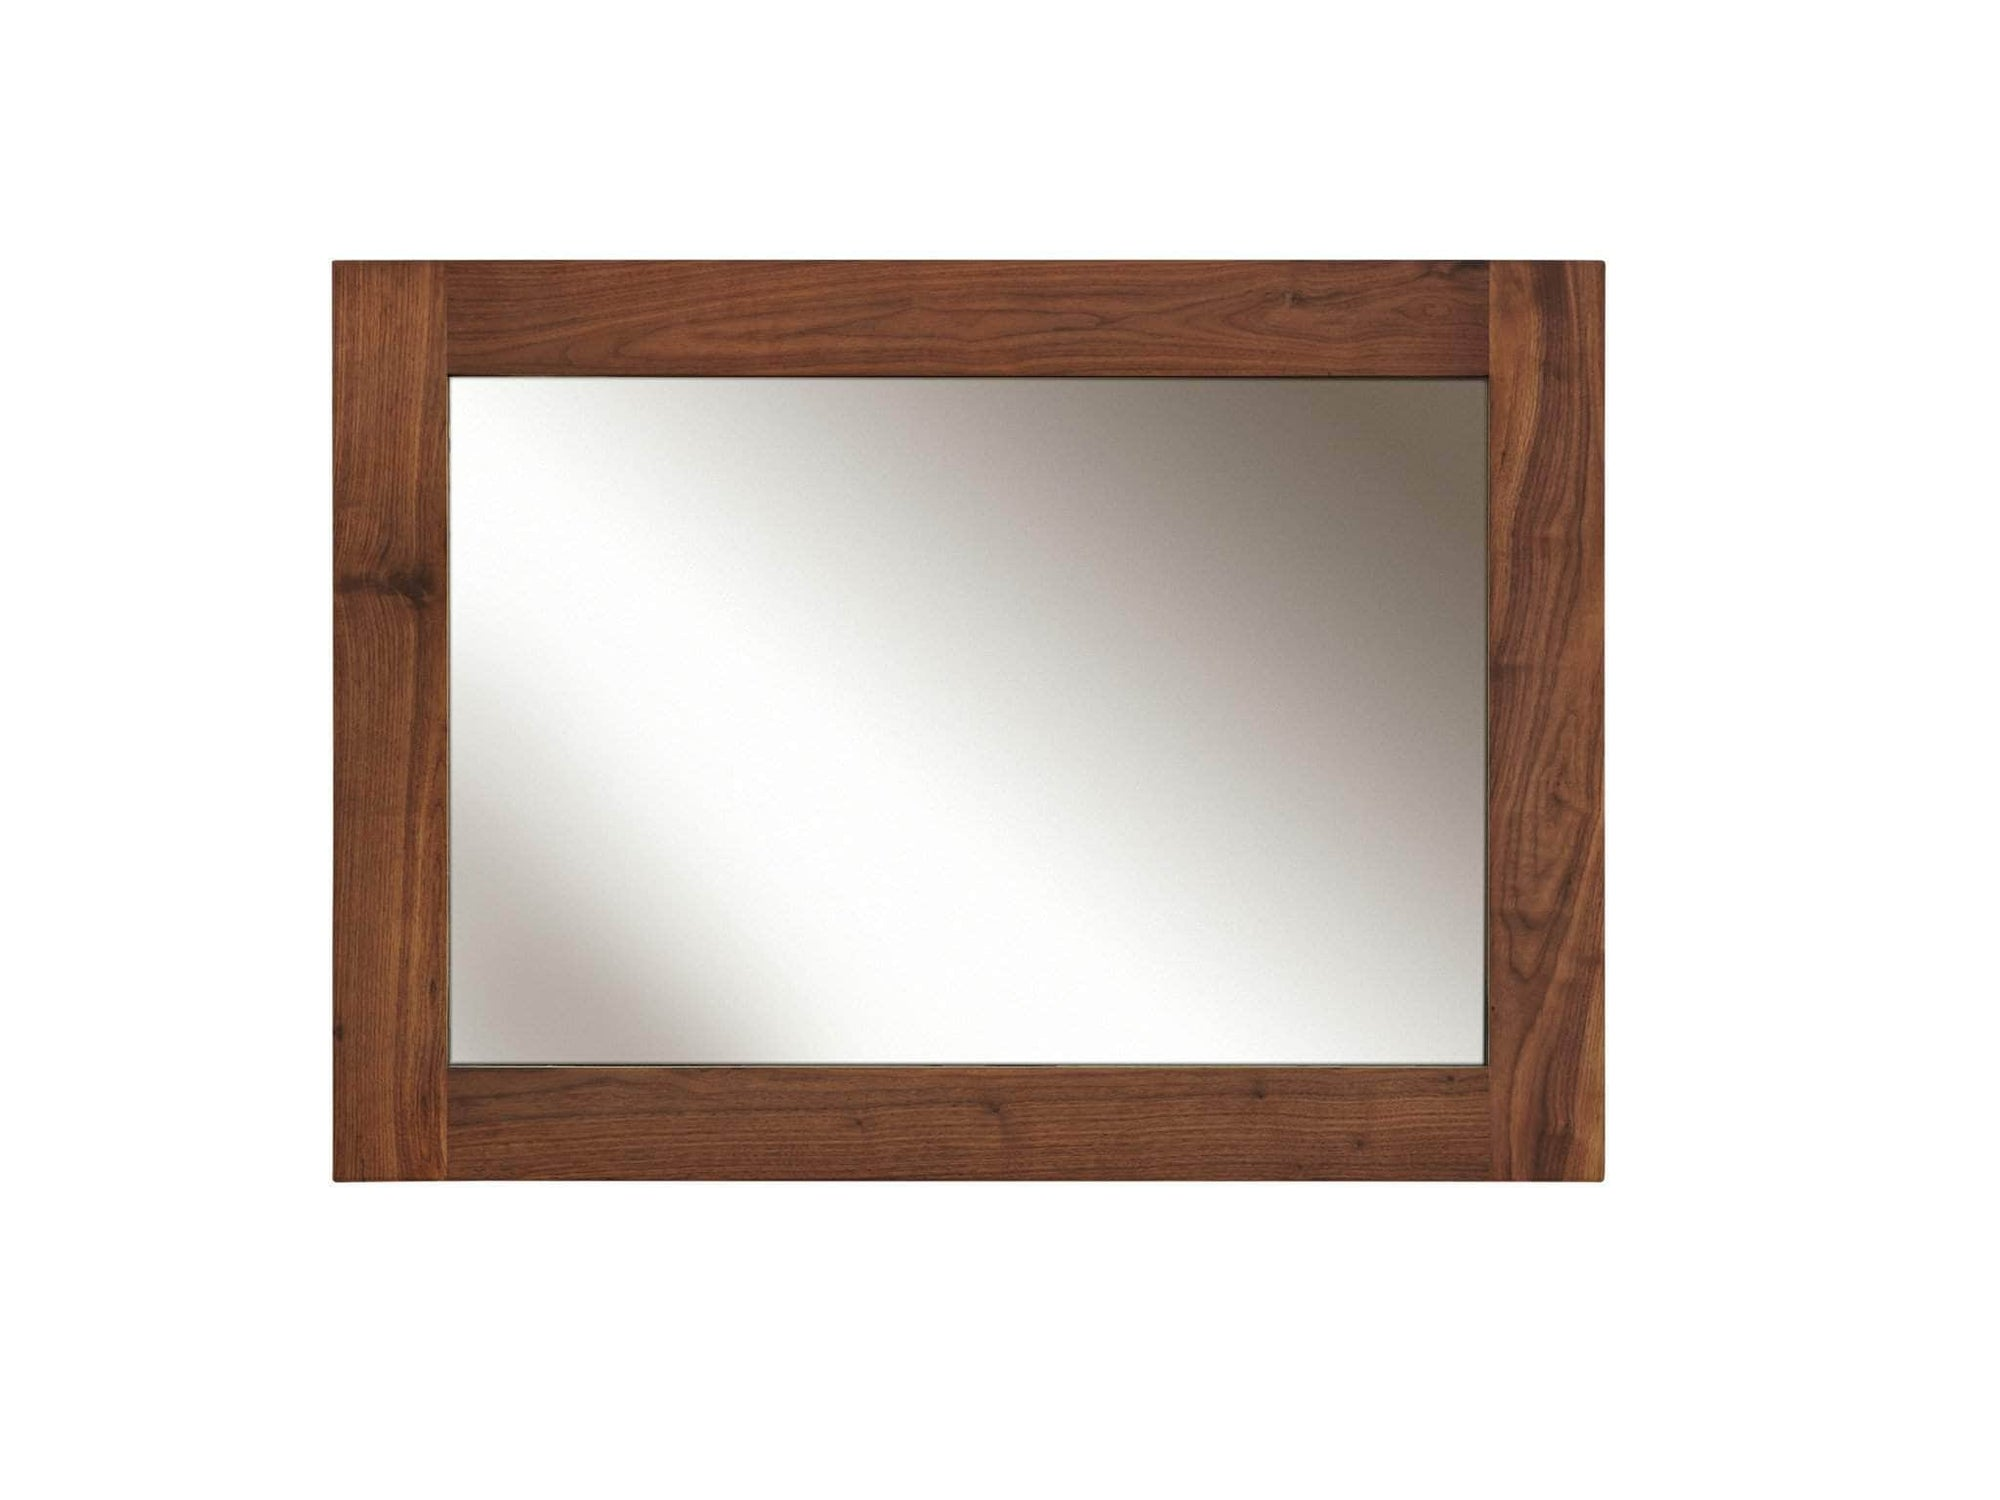 Medium sized mirror with solid walnut frame. Can be hung either in portrait or landscape.